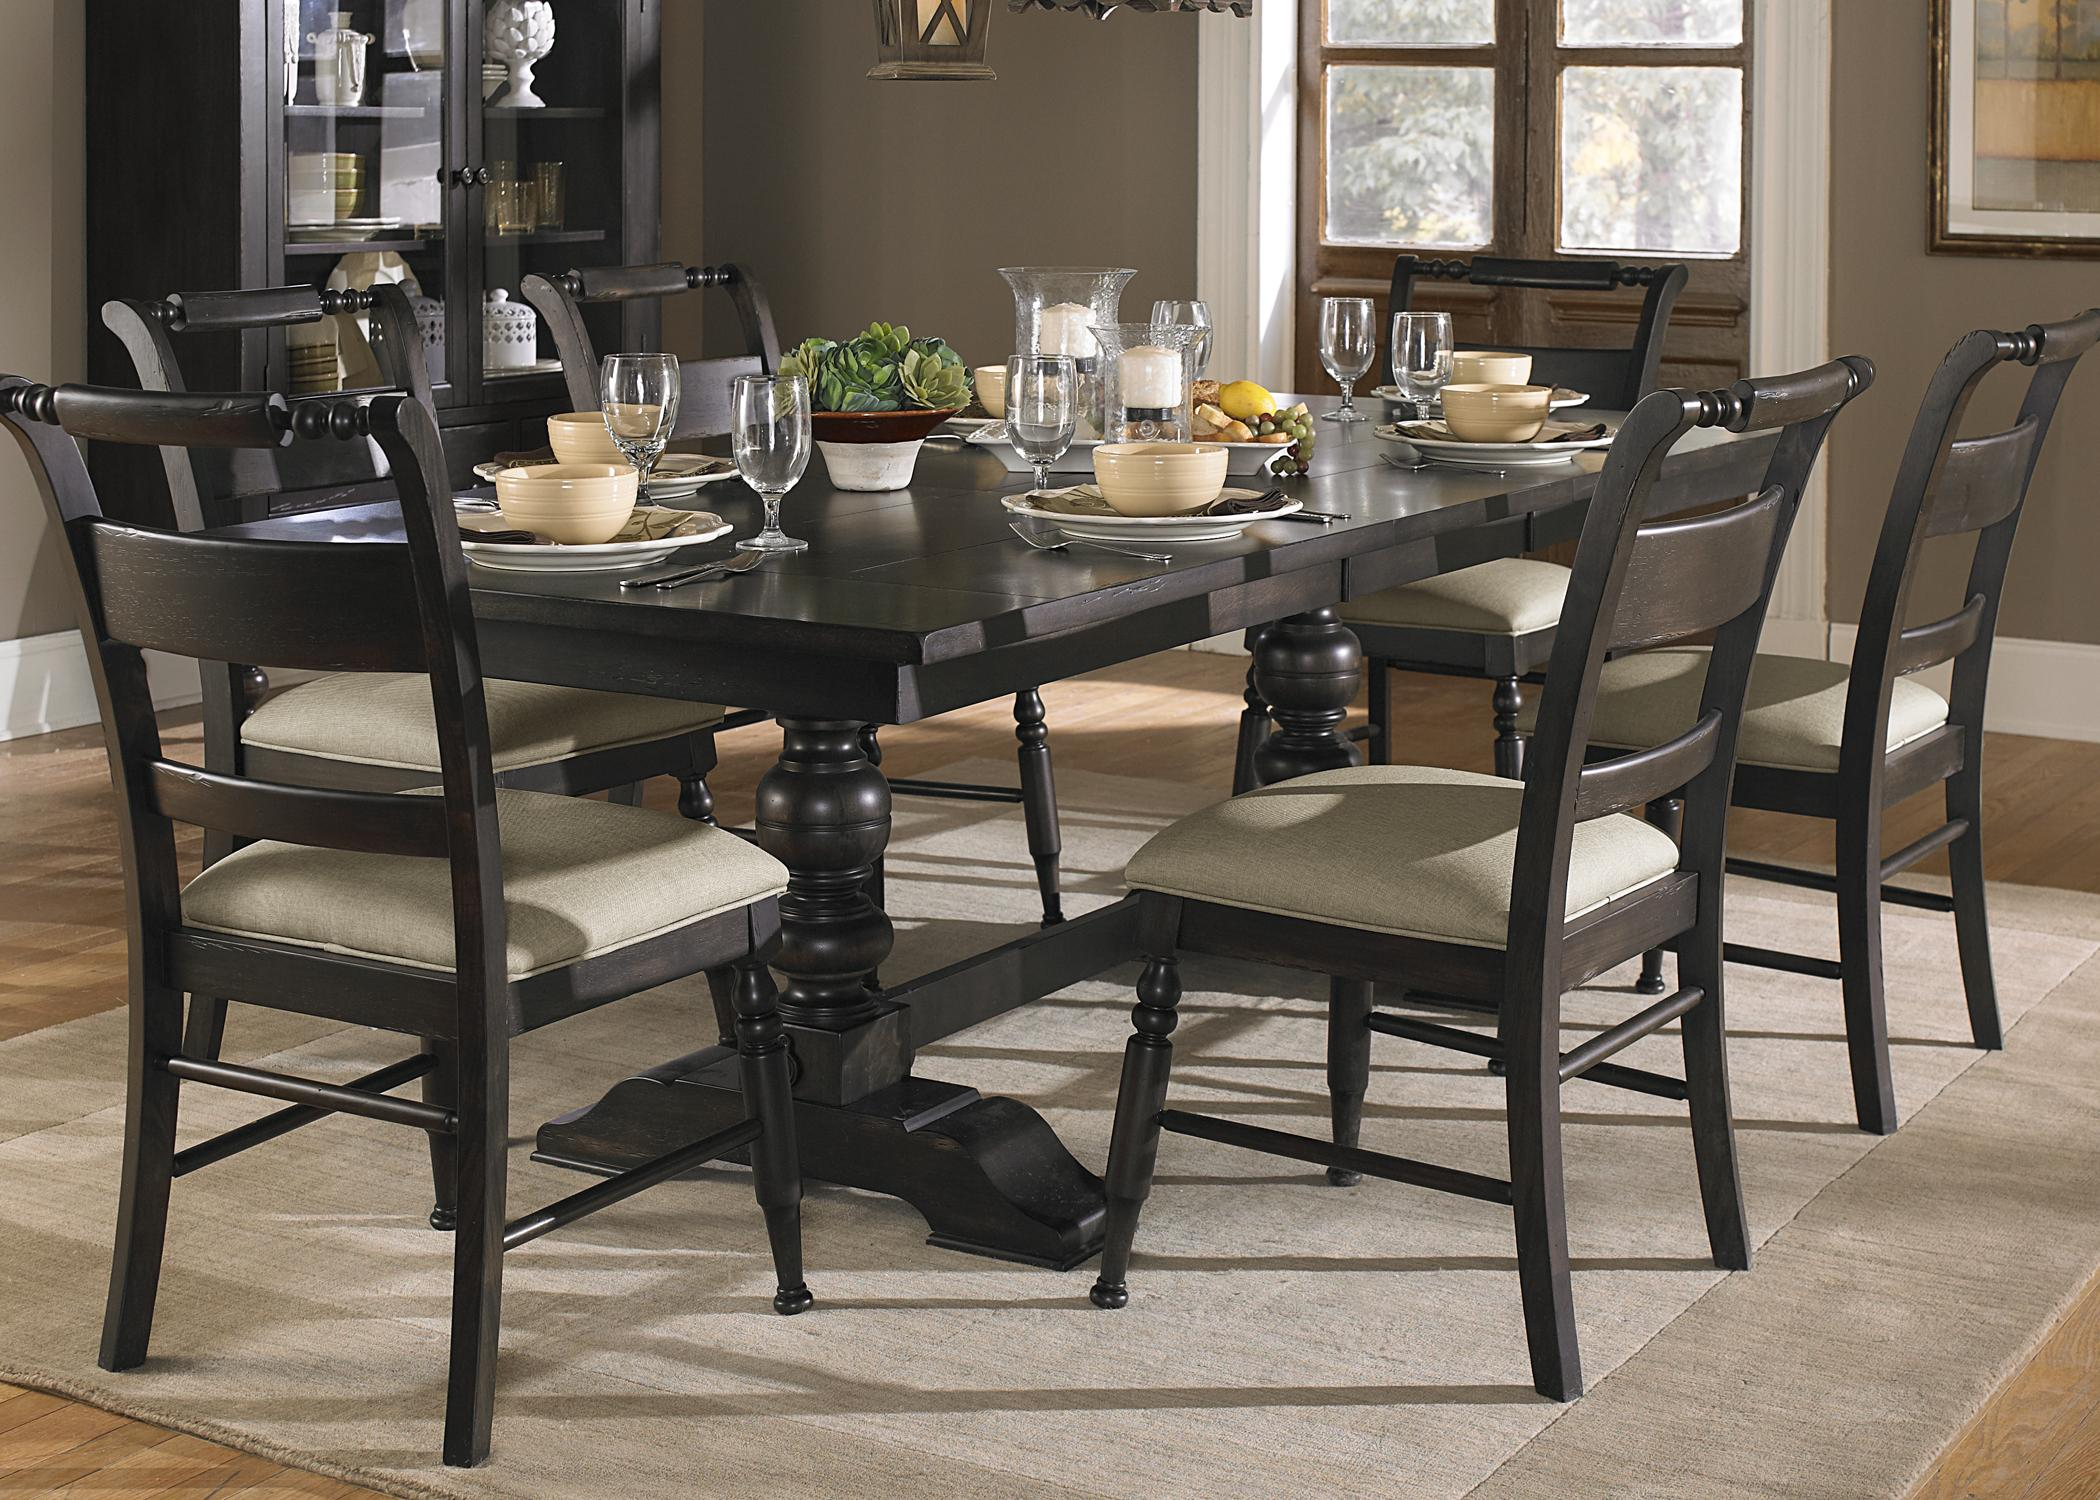 dining room table set. 7 Piece Trestle Dining Room Table Set By Liberty Furniture  Wolf